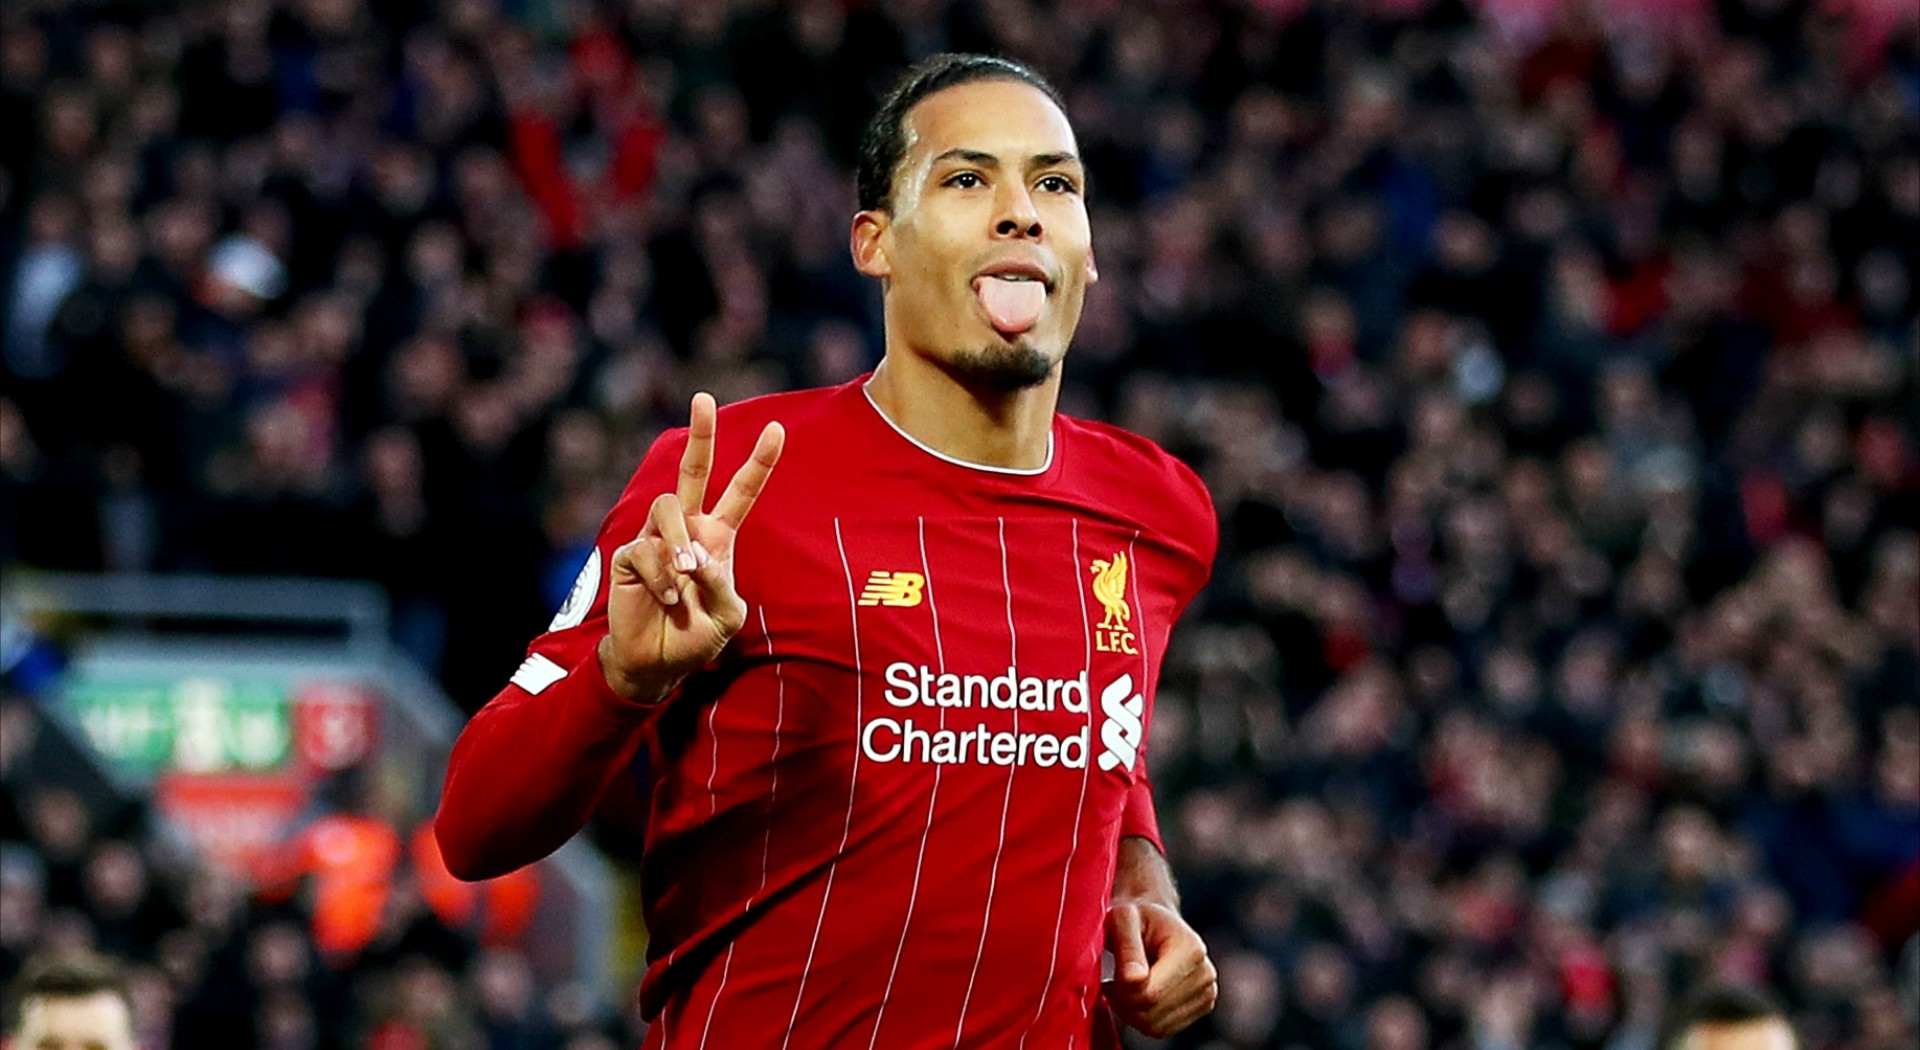 Van dijk explains reason to choose liverpool over man city - Bóng Đá